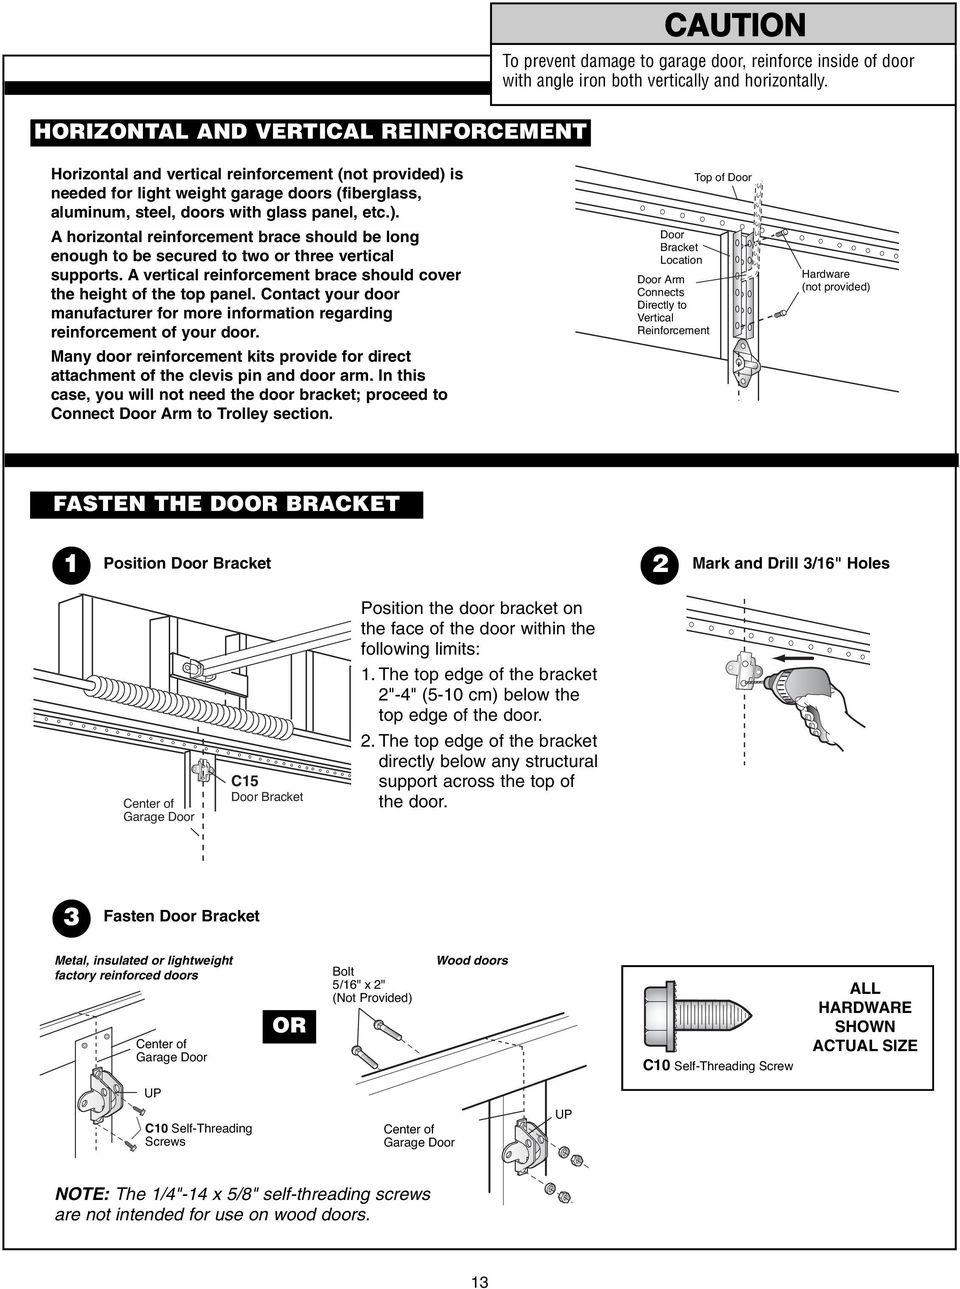 Garage Door Opener Assembly Installation Manual Pdf Reinforcement Bracket On Motor Diagram A Vertical Brace Should Cover The Height Of Top Panel Contact Your